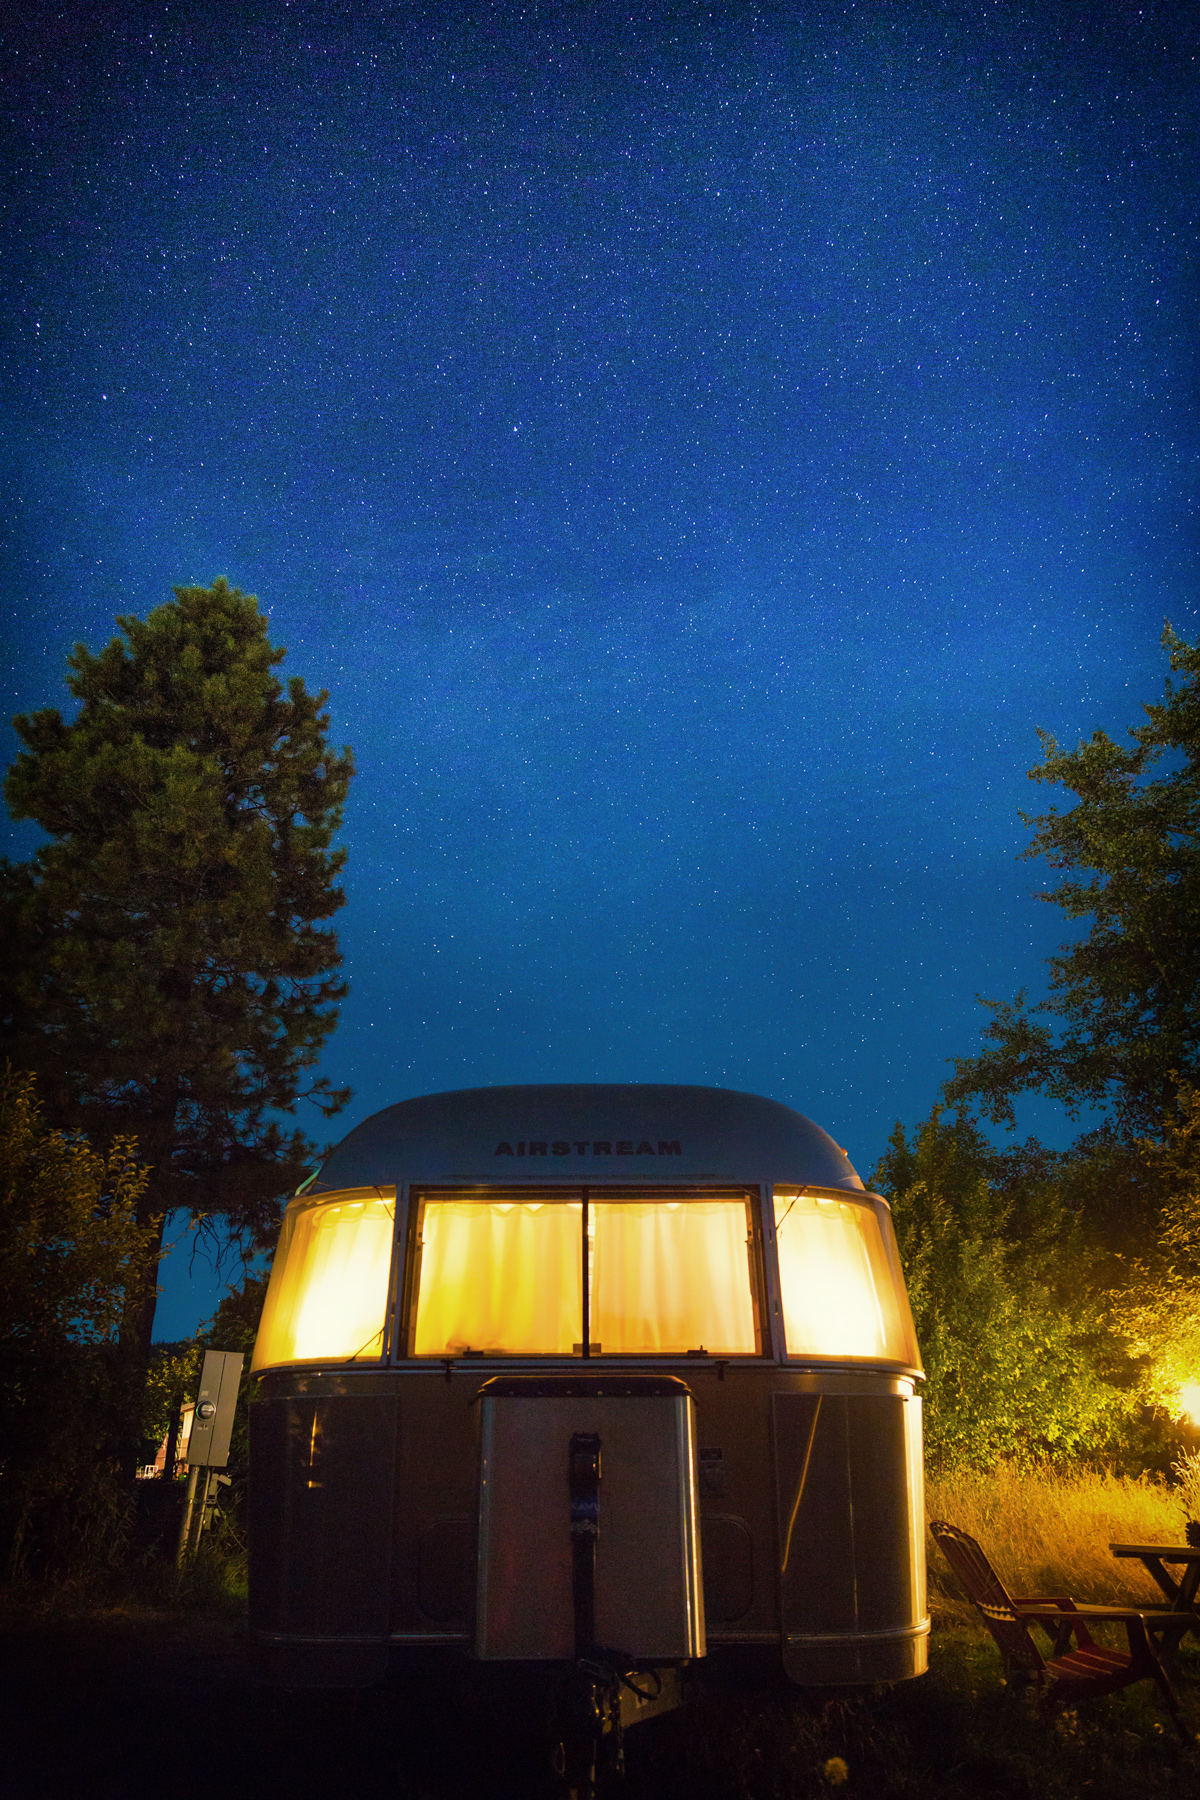 Goodnite Airstream